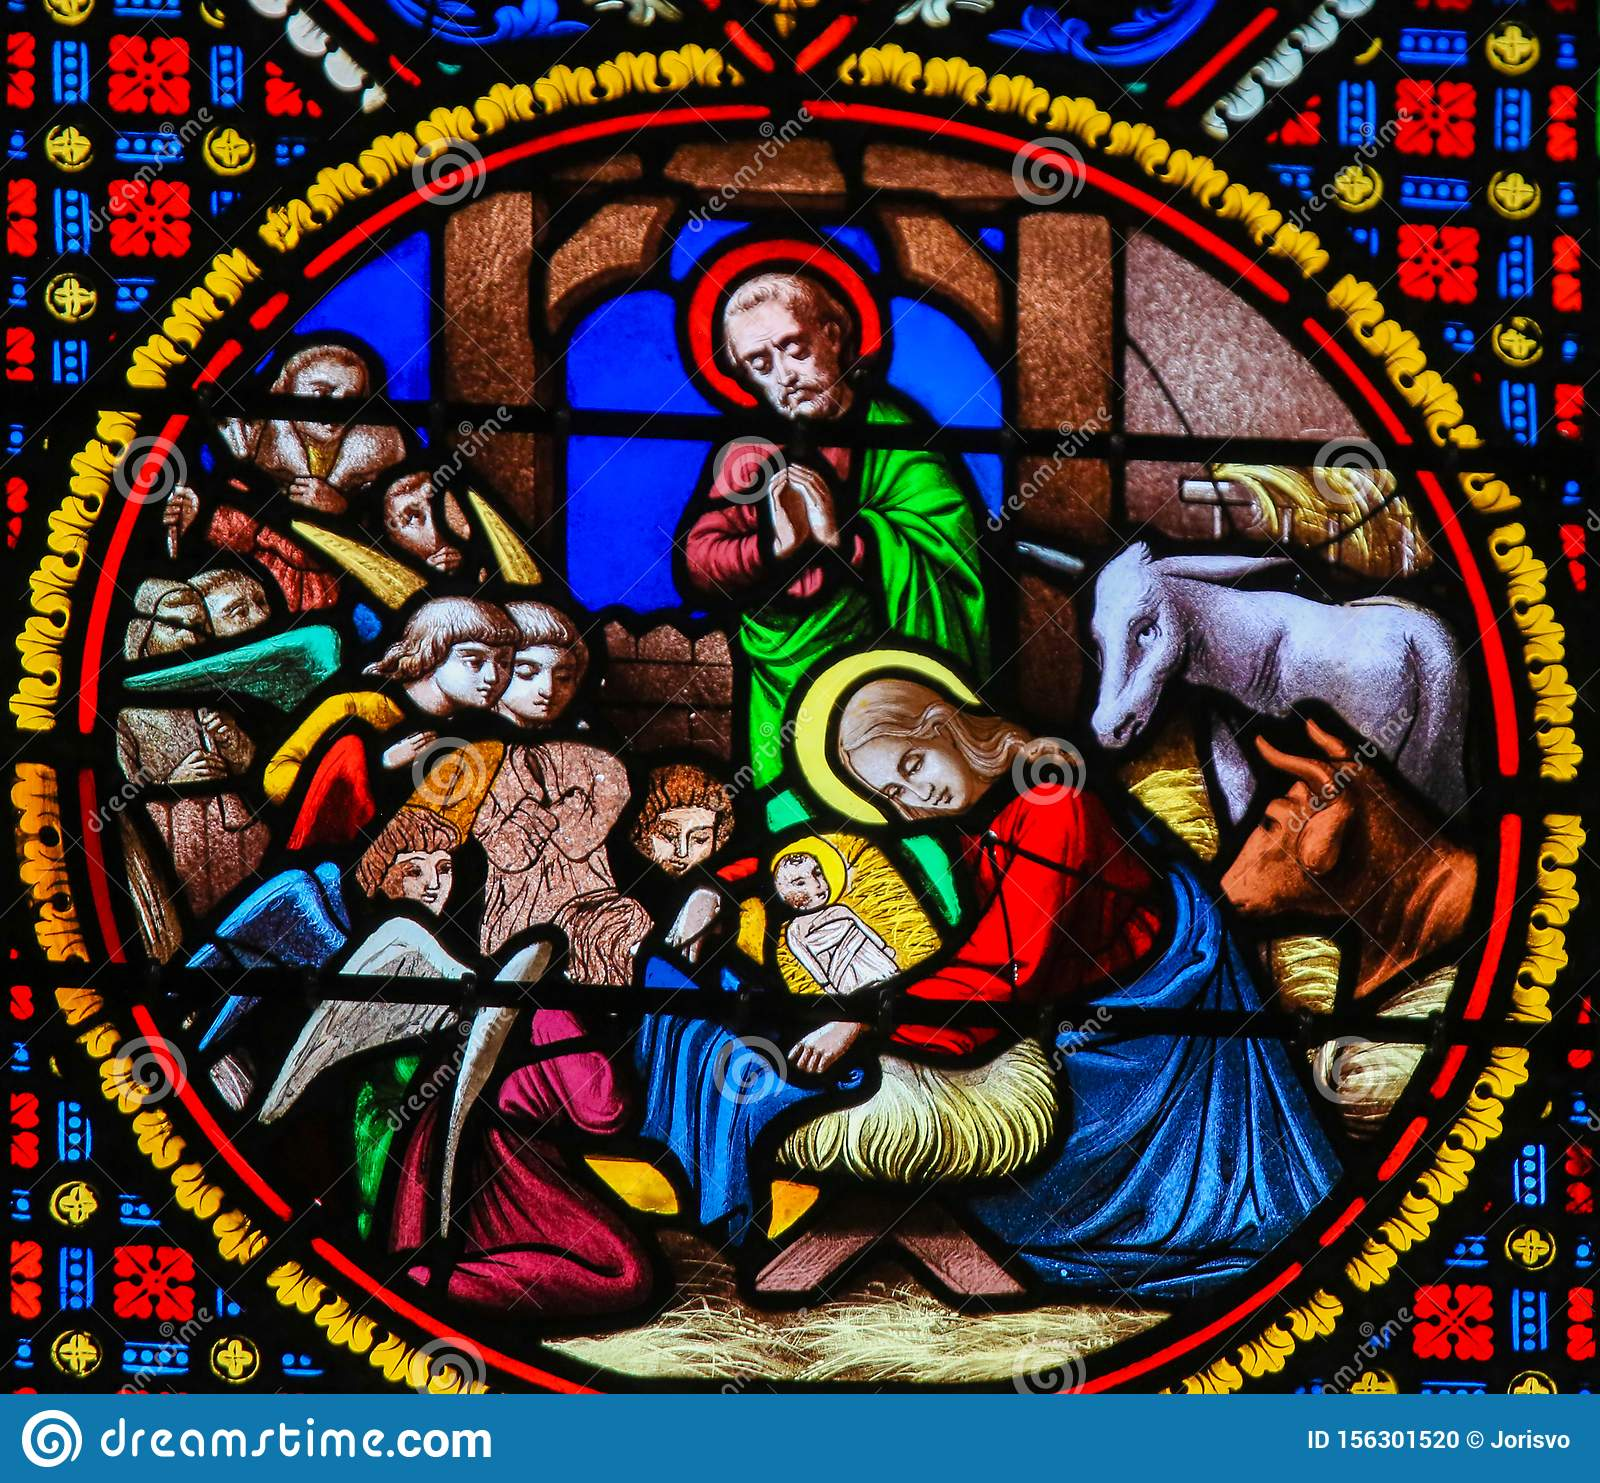 https www dreamstime com stained glass notre dame des flots le havre nativity scene christmas chapel sainte adresse france depicting baby image156301520